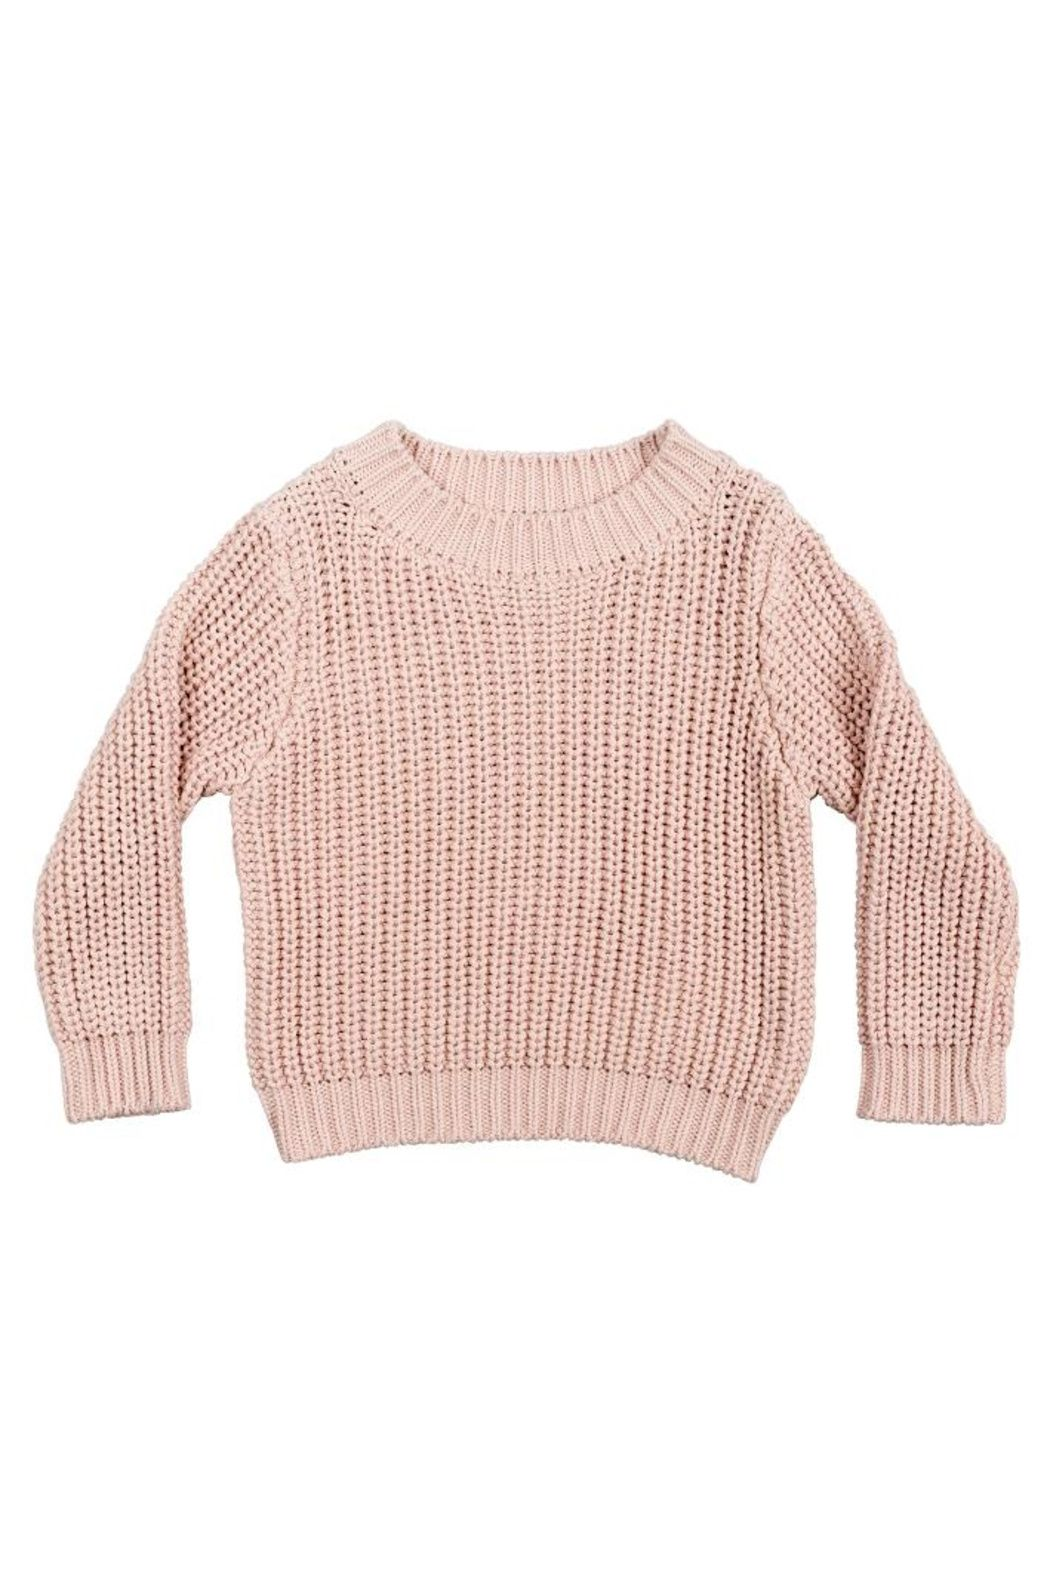 6bd700db5 Huxbaby Chunky Knit Sweater